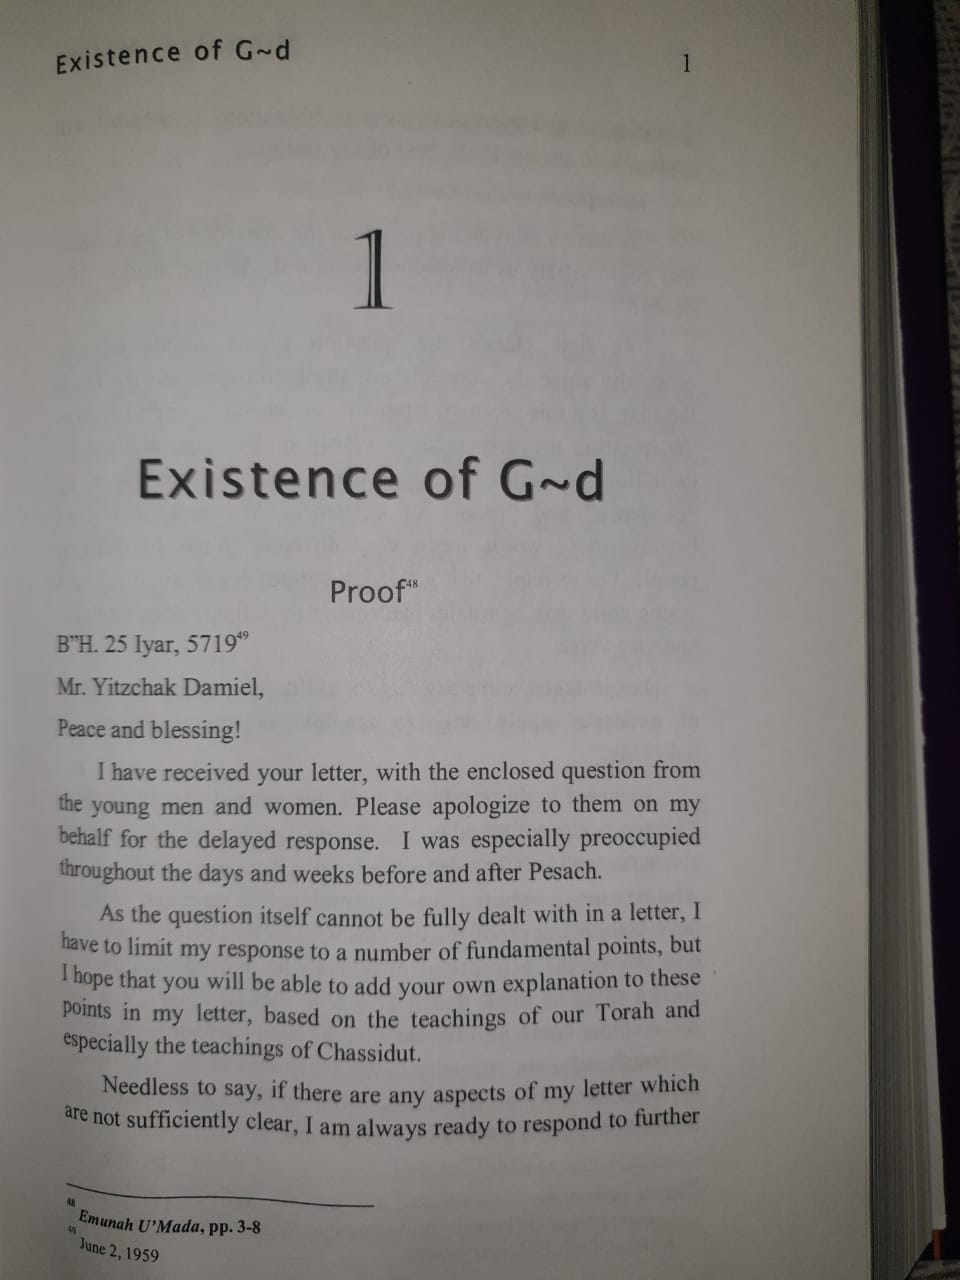 Existence of G-d